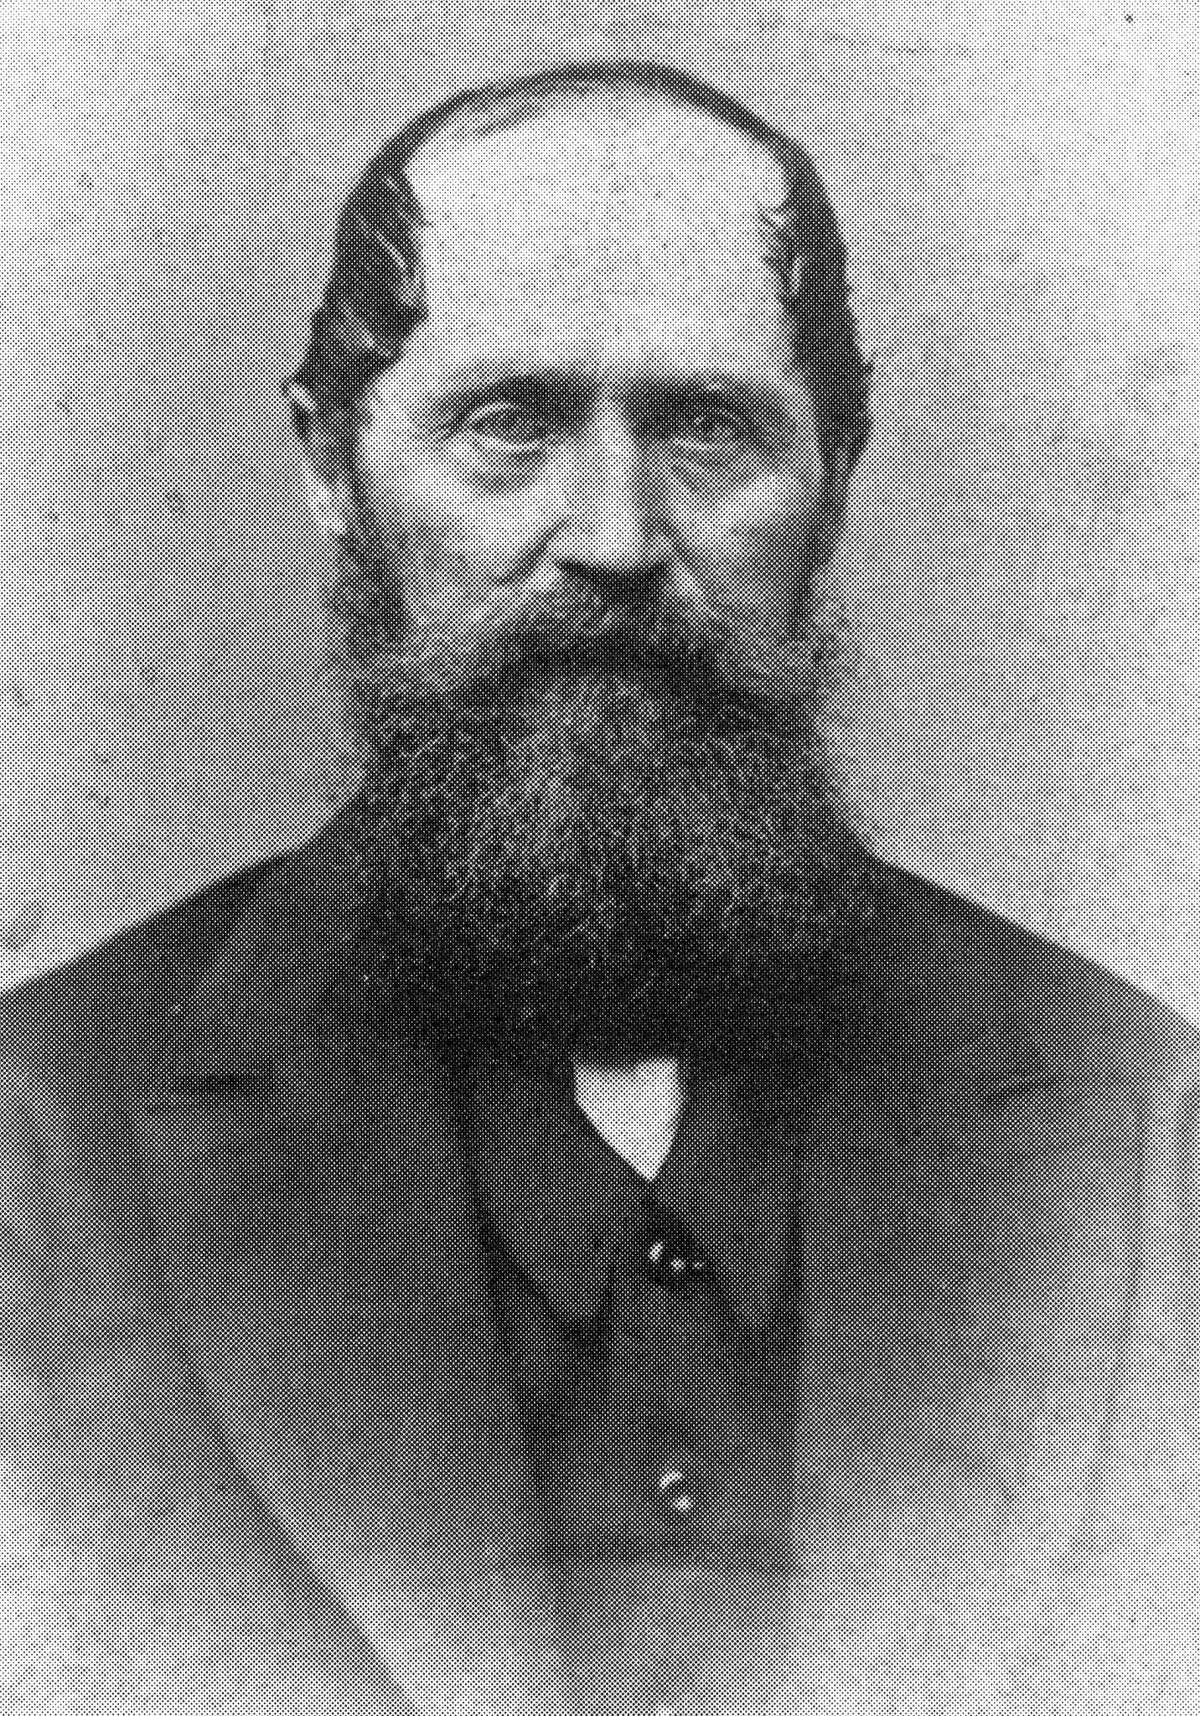 Few today claim relation to Lewis Keseberg, the villain of the Donner Party. Keseberg, a German immigrant, became the saga's most infamous alleged murderer after the final rescue party arrived at Donner Camp in April 1847 and found only Keseberg living. Tamsen Donner, wife of the Donner Party leader, was dead. Accusations were rampant that Keseberg murdered and ate her. Additionally, Keseberg was found to be in possession of George Donner's jewelry and $250 in gold. Newspaper reports record that people taunted Keseberg in the streets. However, Keseberg's legacy as a brewer endures. In 1853, he founded Sacramento's Phoenix Brewery, the first to introduce lagers to the region. In 1862, the successful brewery was destroyed by floods.  Keseberg died destitute and alone at a county hospital and was buried in an unknown location. His descendants allegedly changed their last name and settled in Napa County.